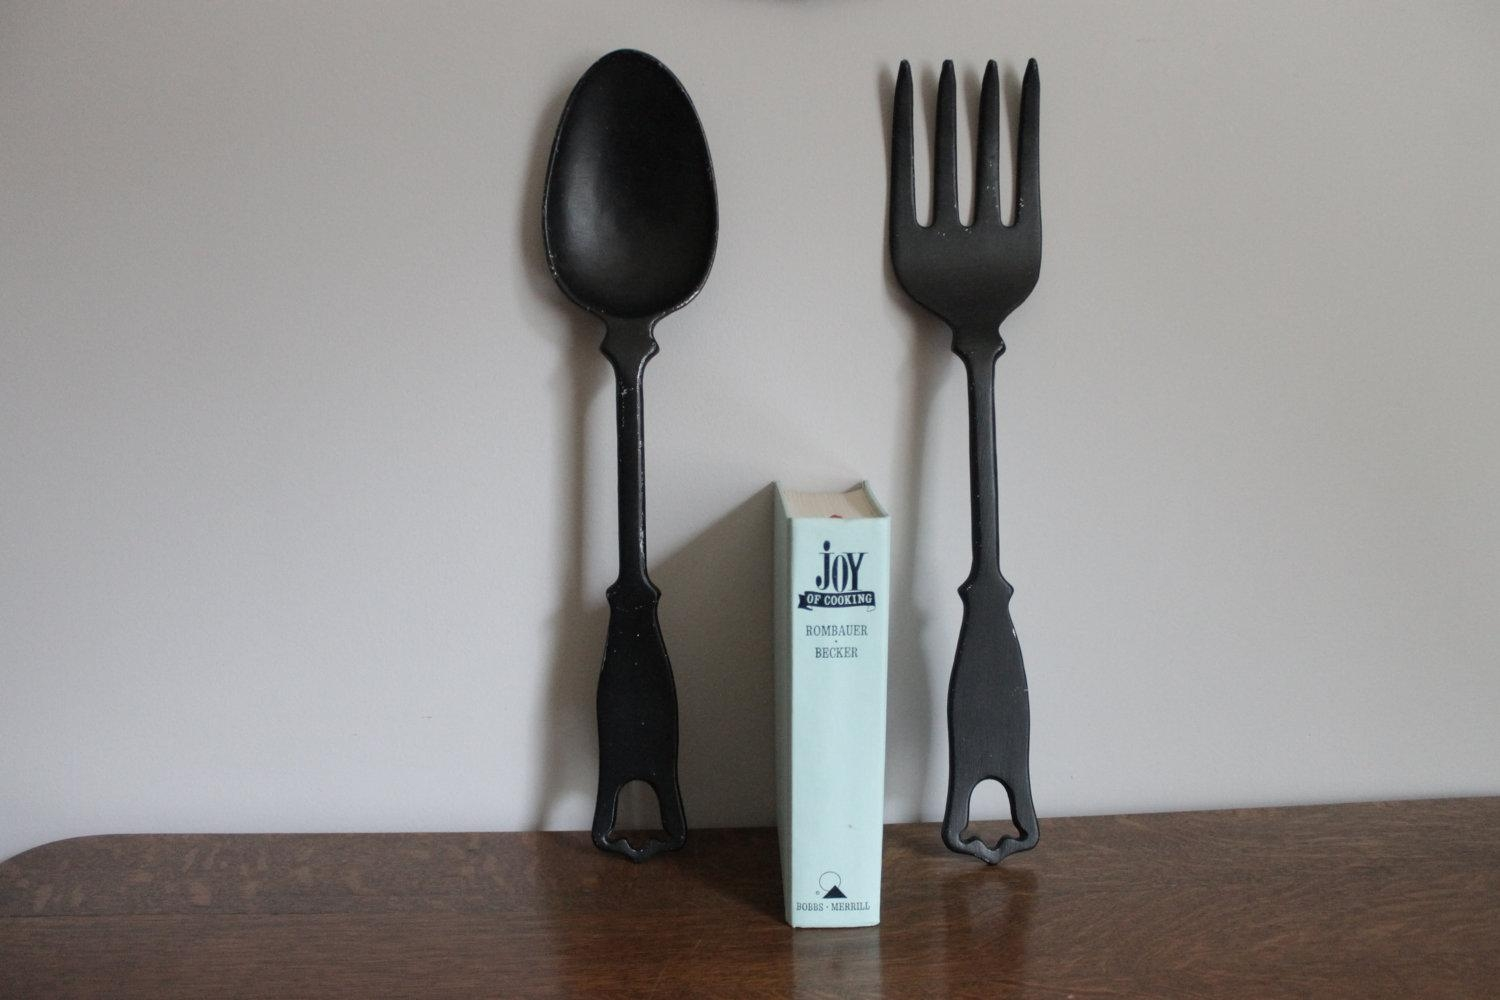 Giant Knife Fork And Spoon Wall Art : Giant Fork And Spoon Wall Within Large Spoon And Fork Wall Art (Image 8 of 20)